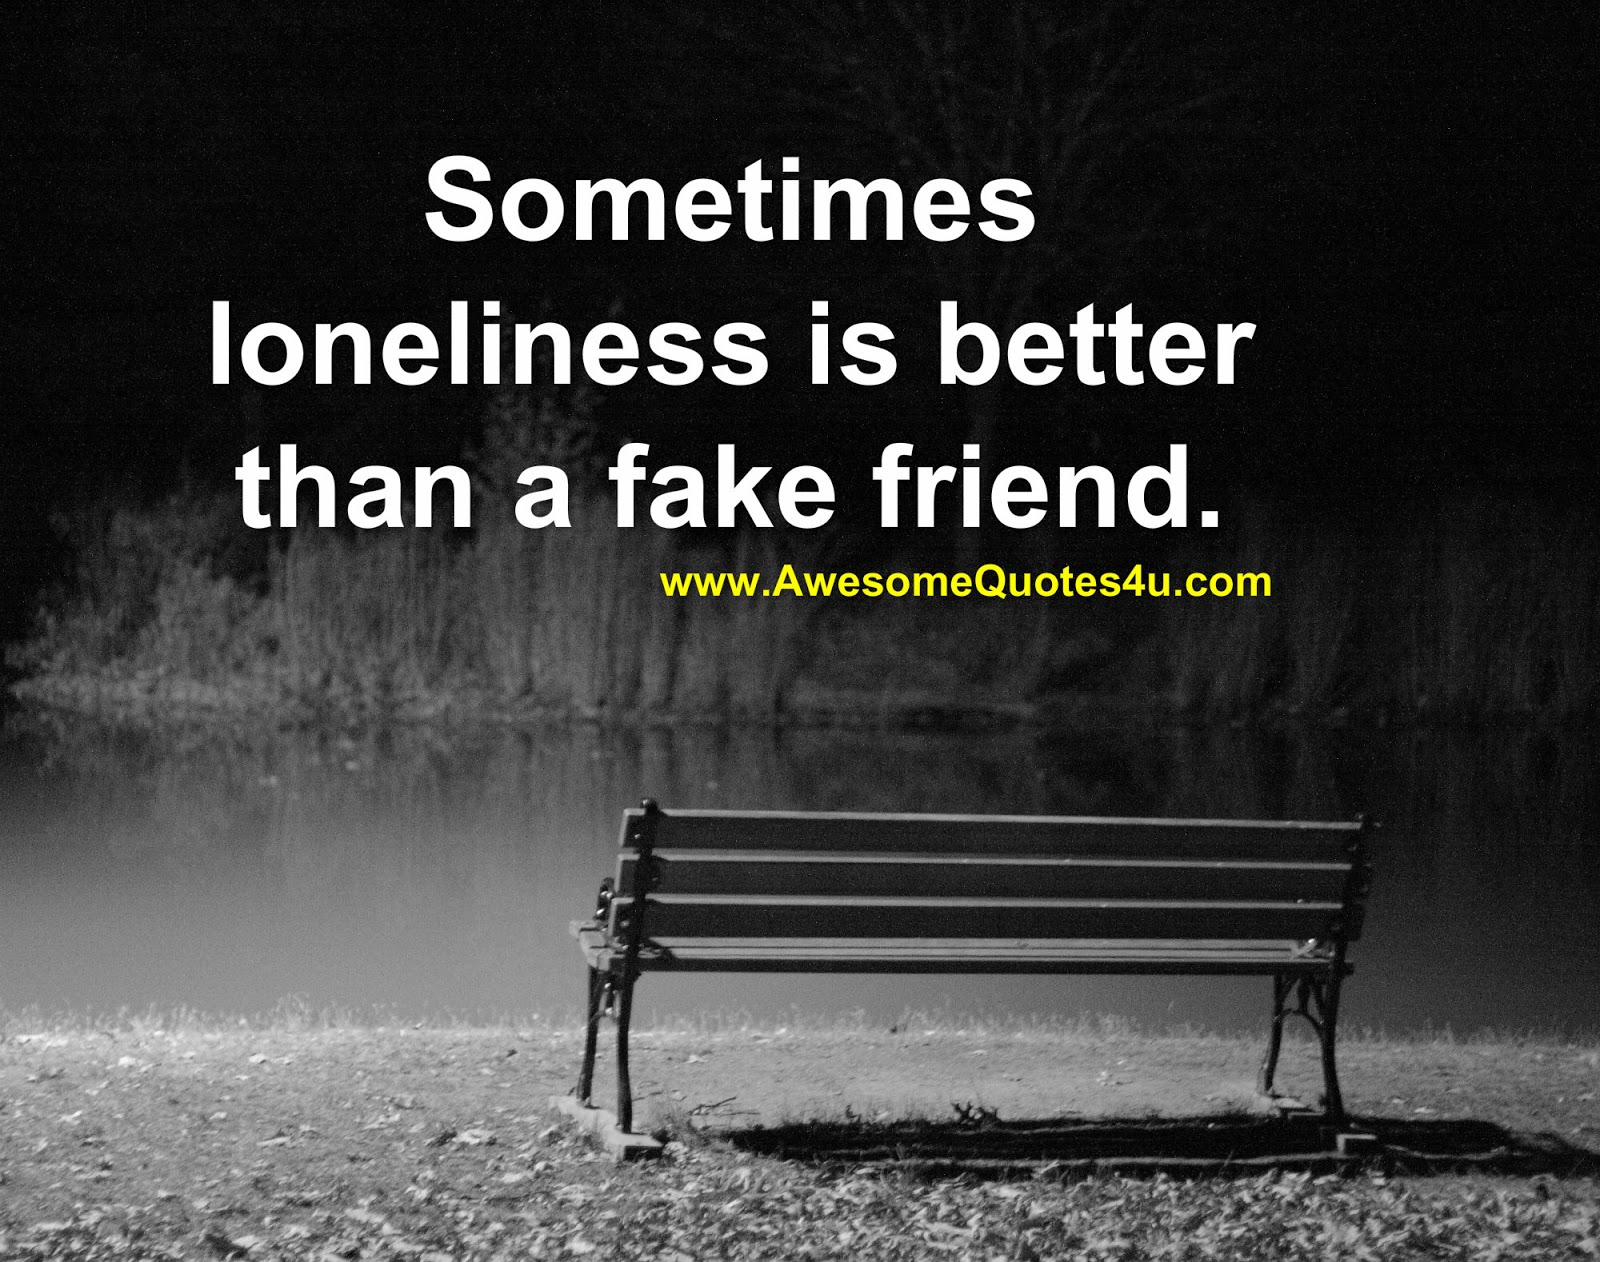 Awesome Quotes: Sometimes loneliness is better than a fake ...